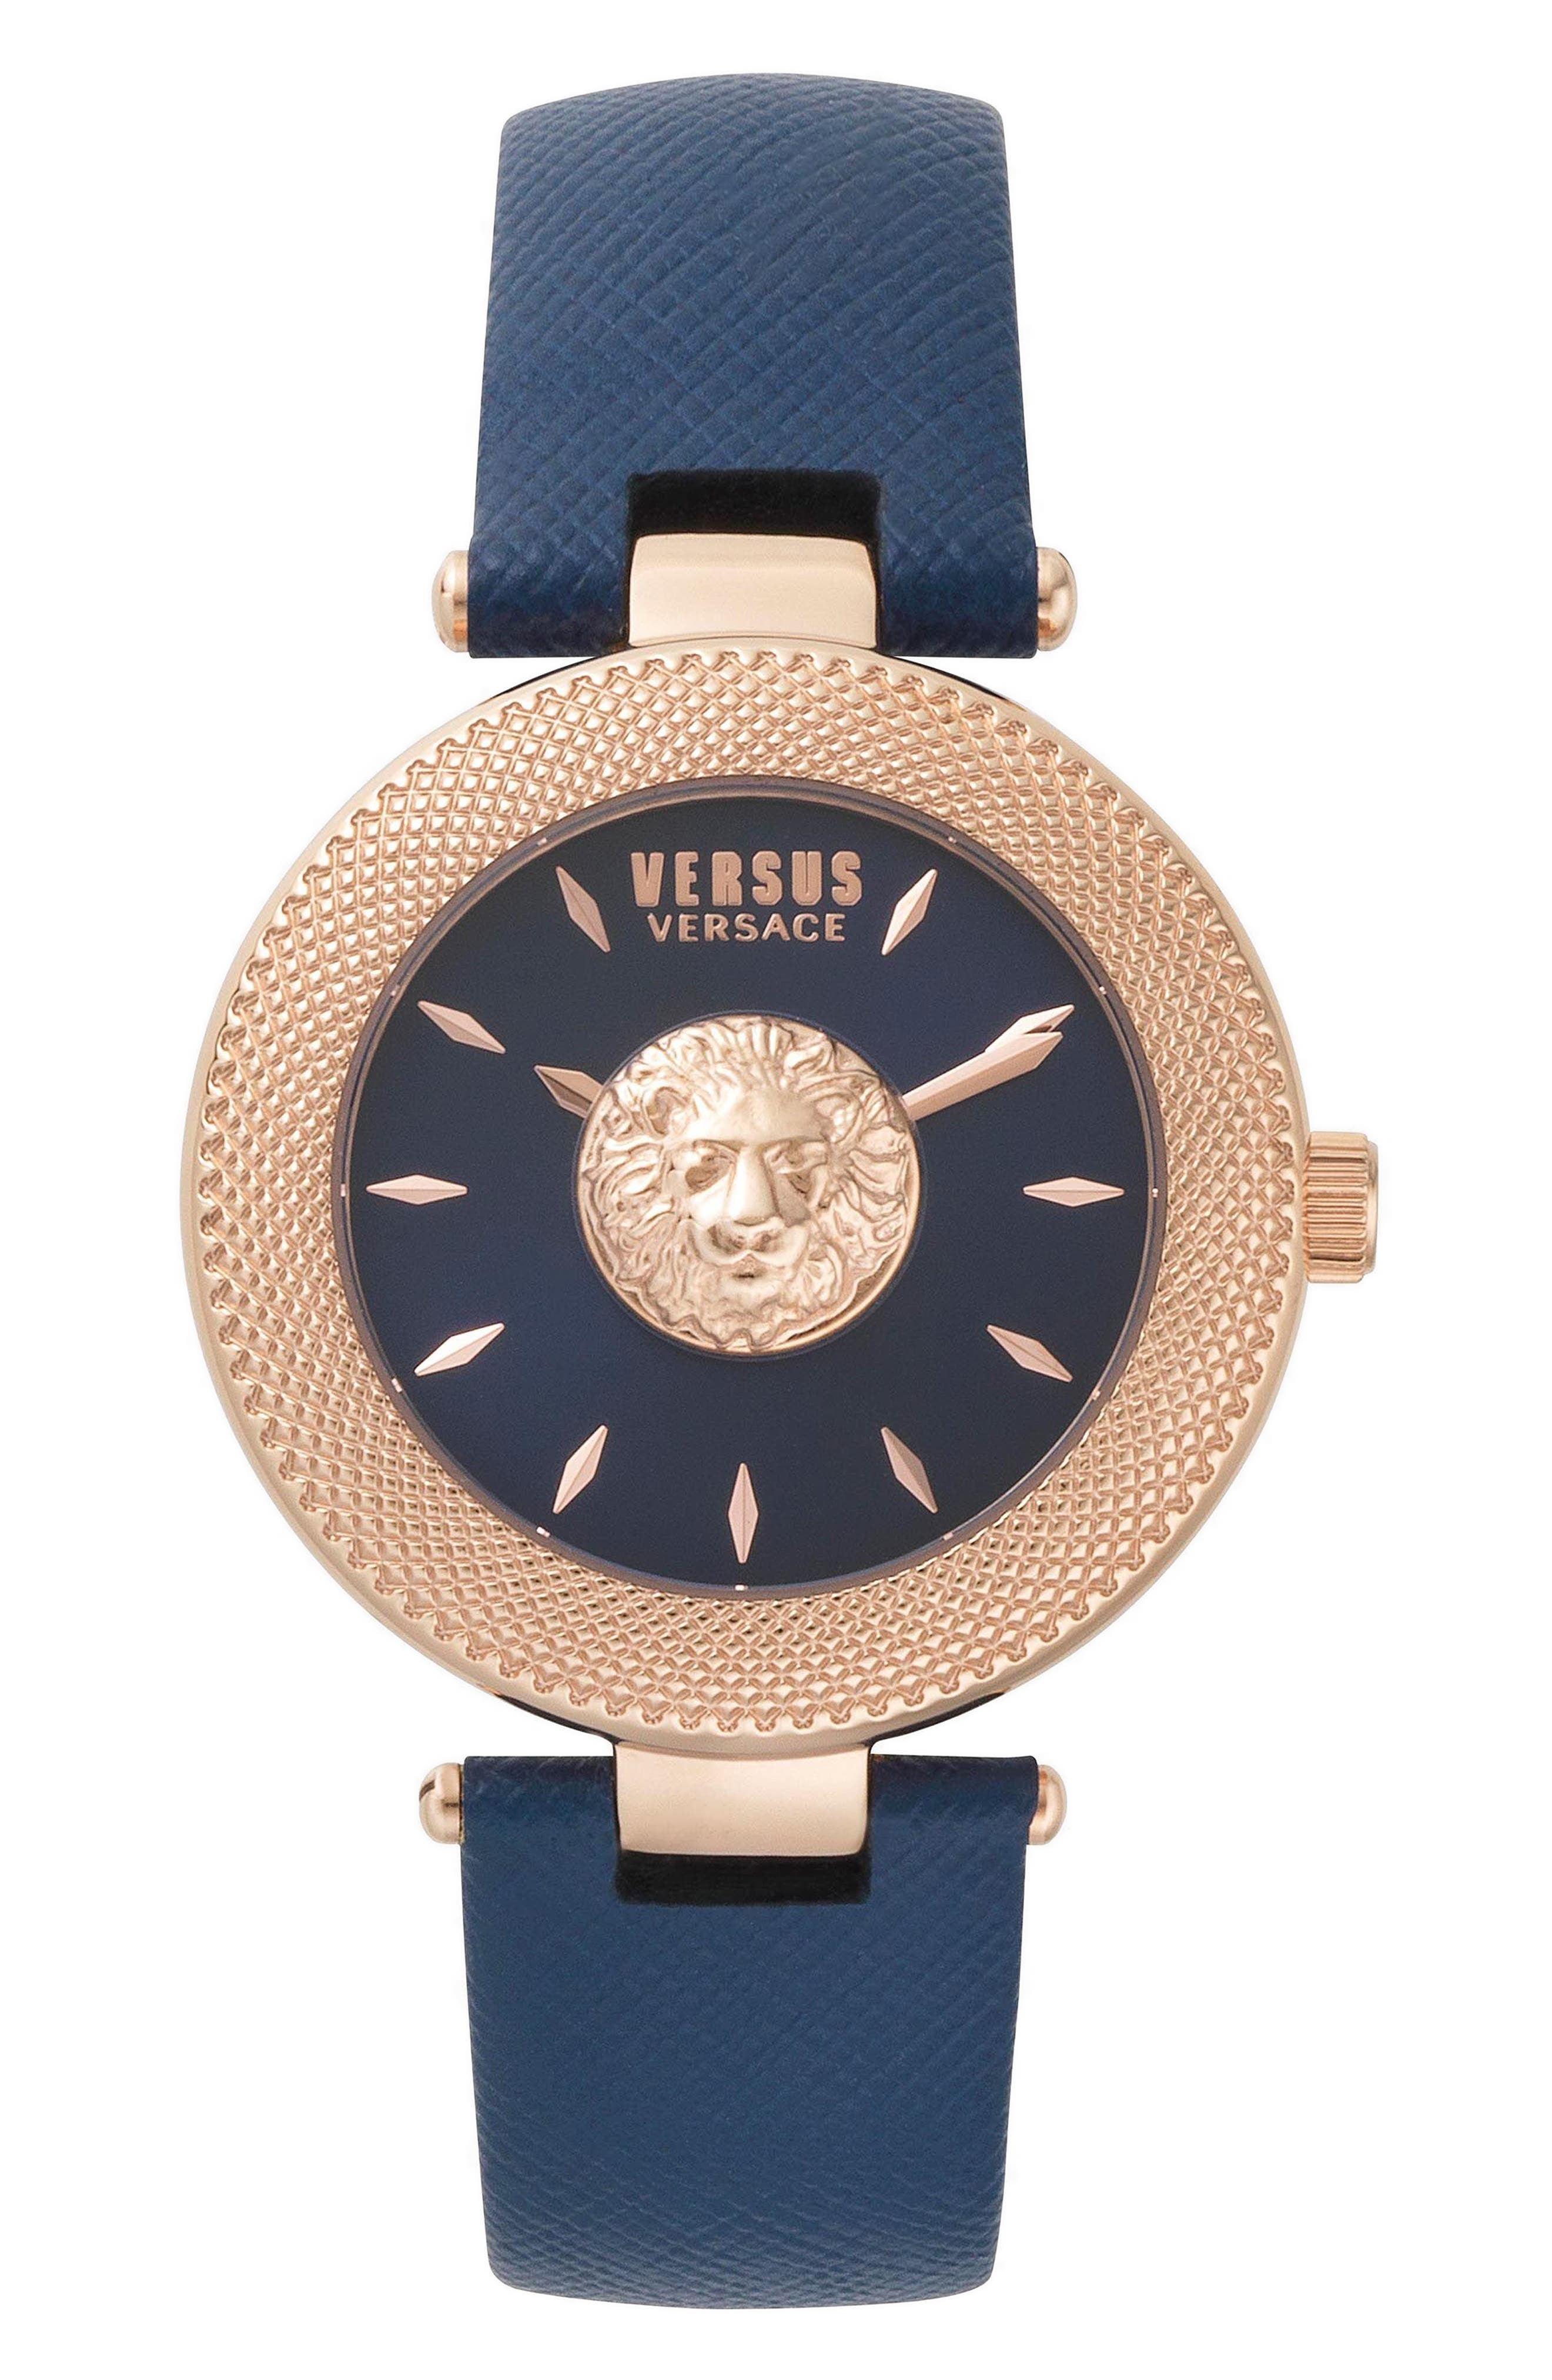 VERSUS by Versace Brick Lane Leather Strap Watch, 40mm,                             Main thumbnail 1, color,                             Blue/ Rose Gold